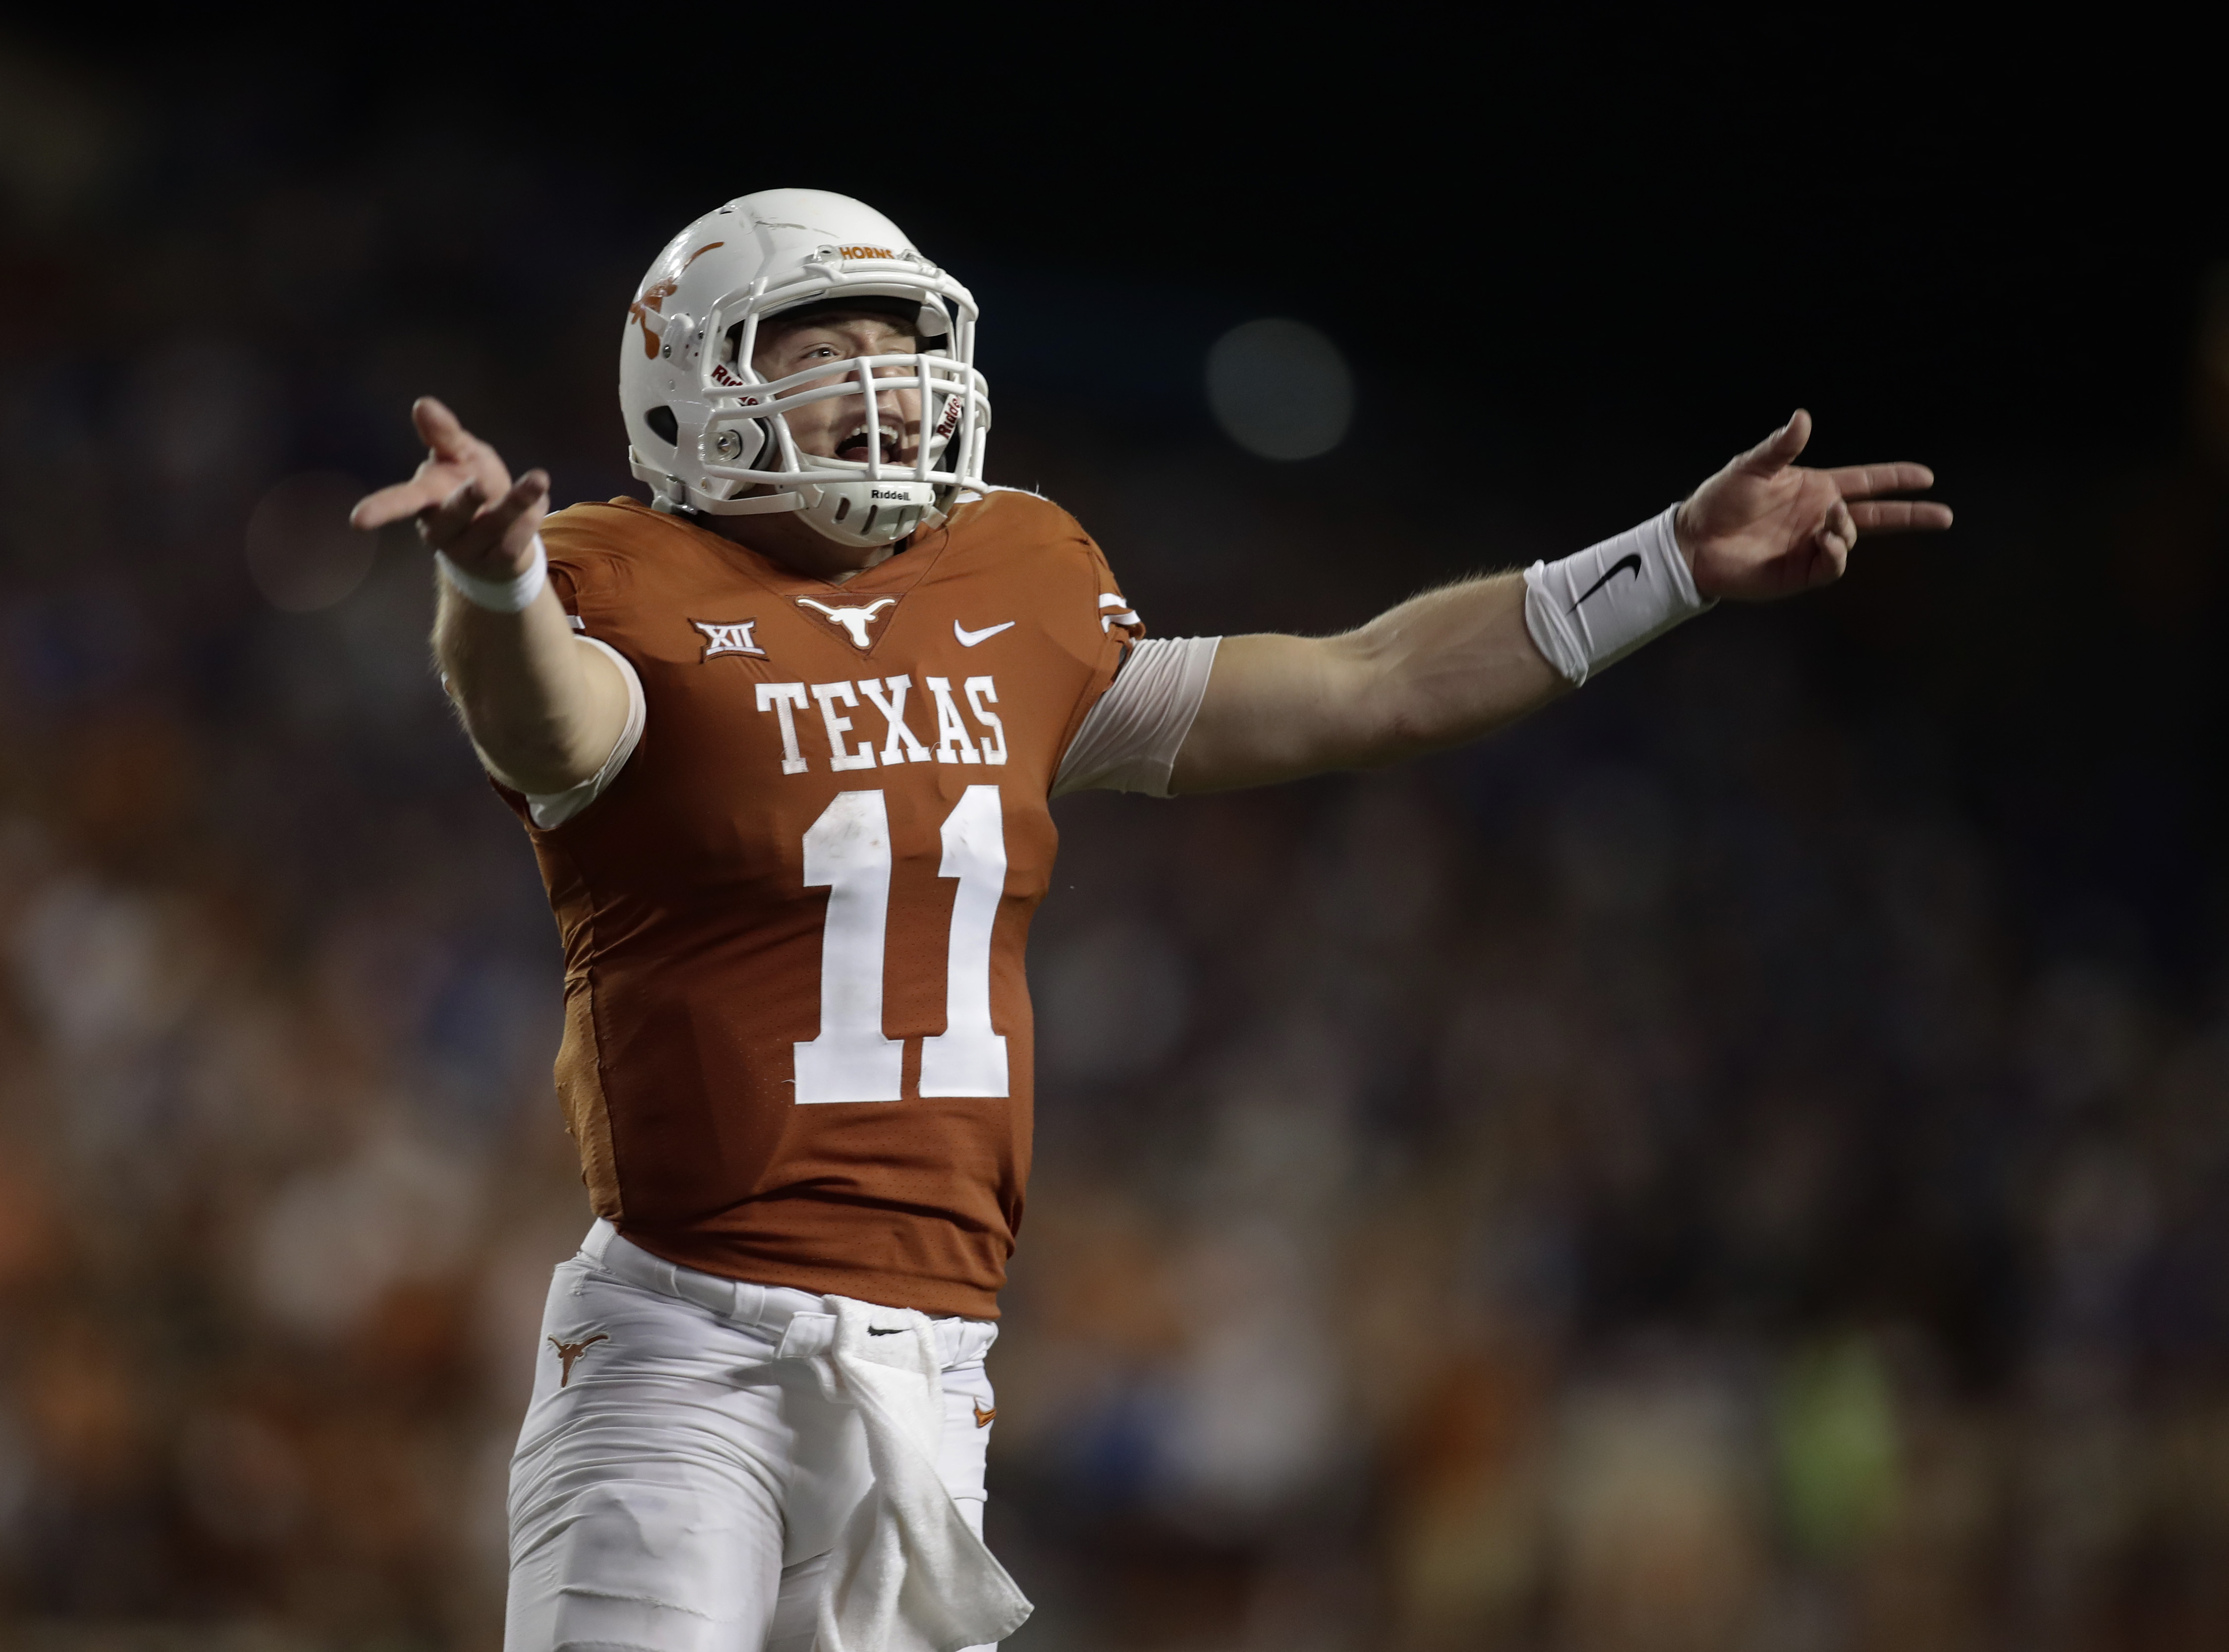 Oct 7, 2017; Austin, TX, USA; Texas Longhorns quarterback Sam Ehlinger (11) celebrates a touchdown against the Kansas State Wildcats at Darrell K Royal-Texas Memorial Stadium. Texas won 40-35 in double overtime. Mandatory Credit: Erich Schlegel-USA TODAY Sports